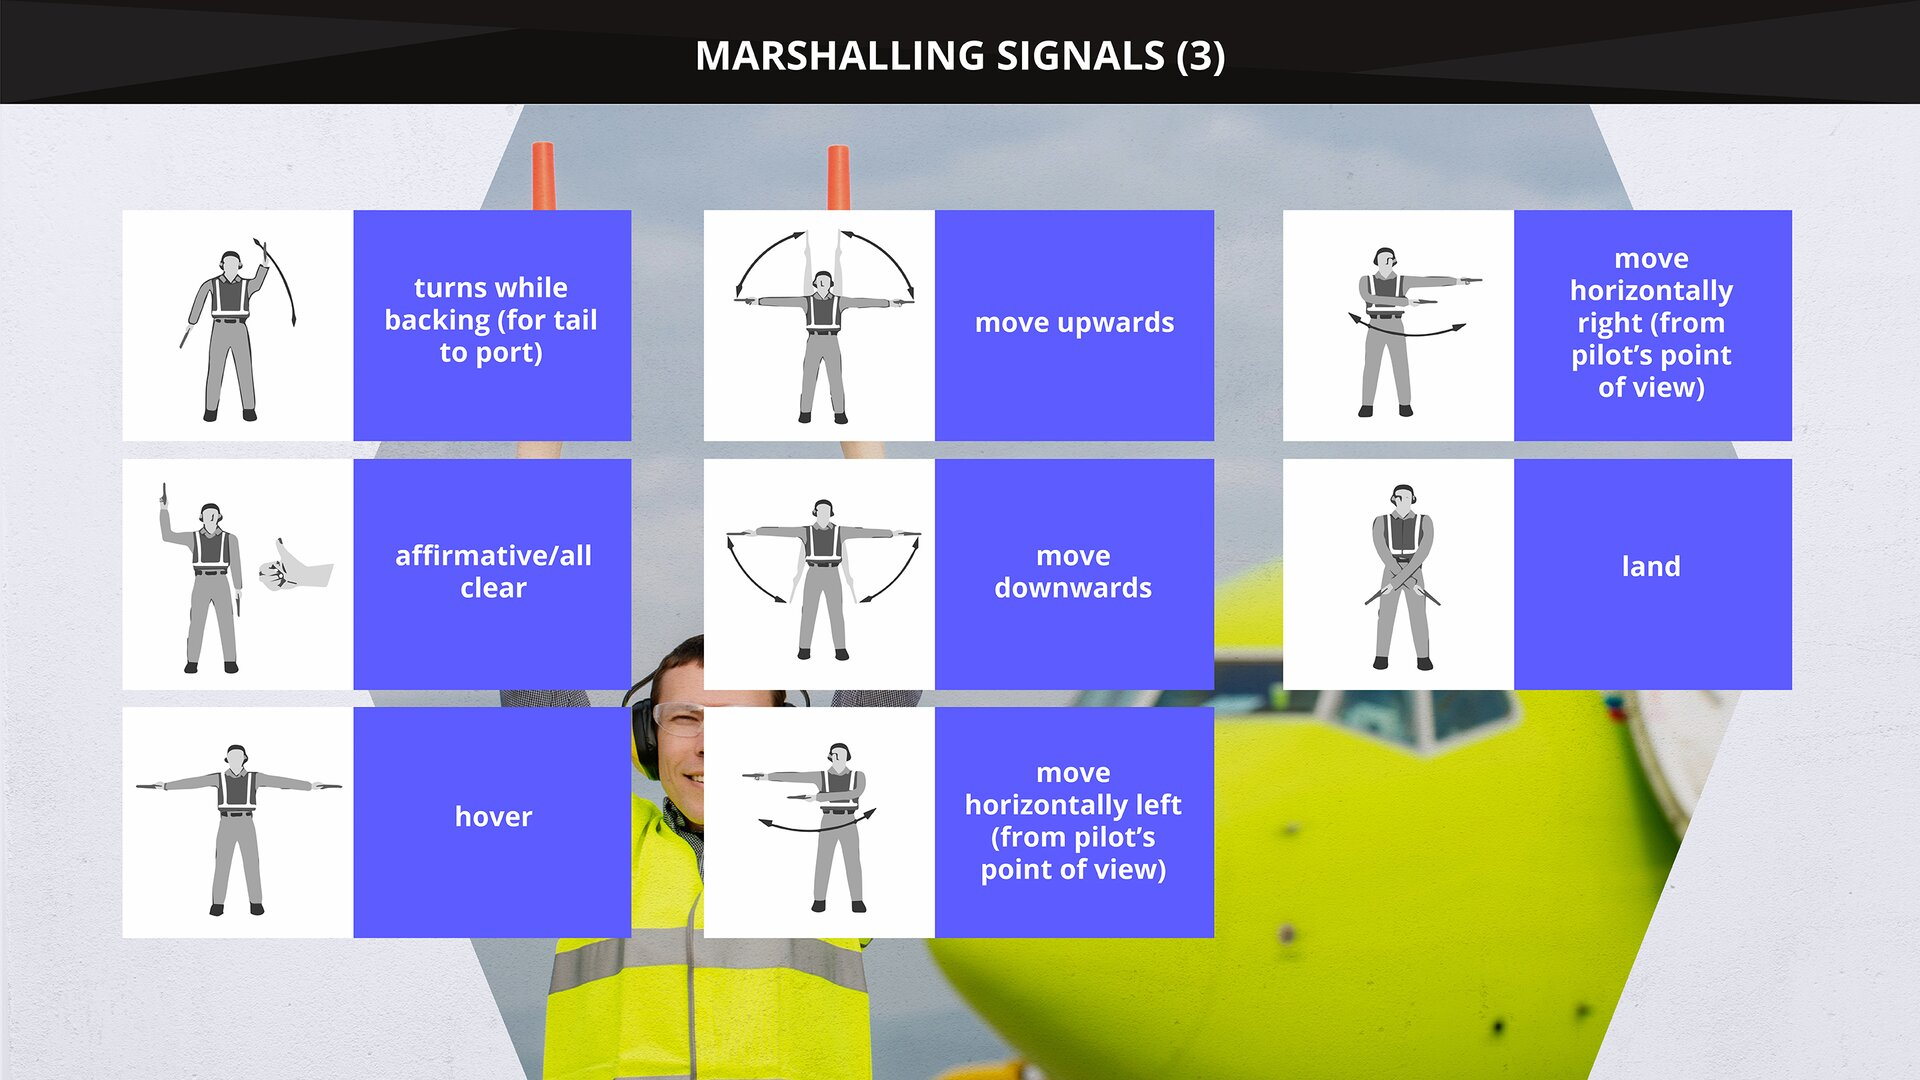 The image presents marshalling signals from a signalman to an aircraft. Grafika przedstawia sygnały manewrowania od koordynatora ruchu naziemnego do statku powietrznego.